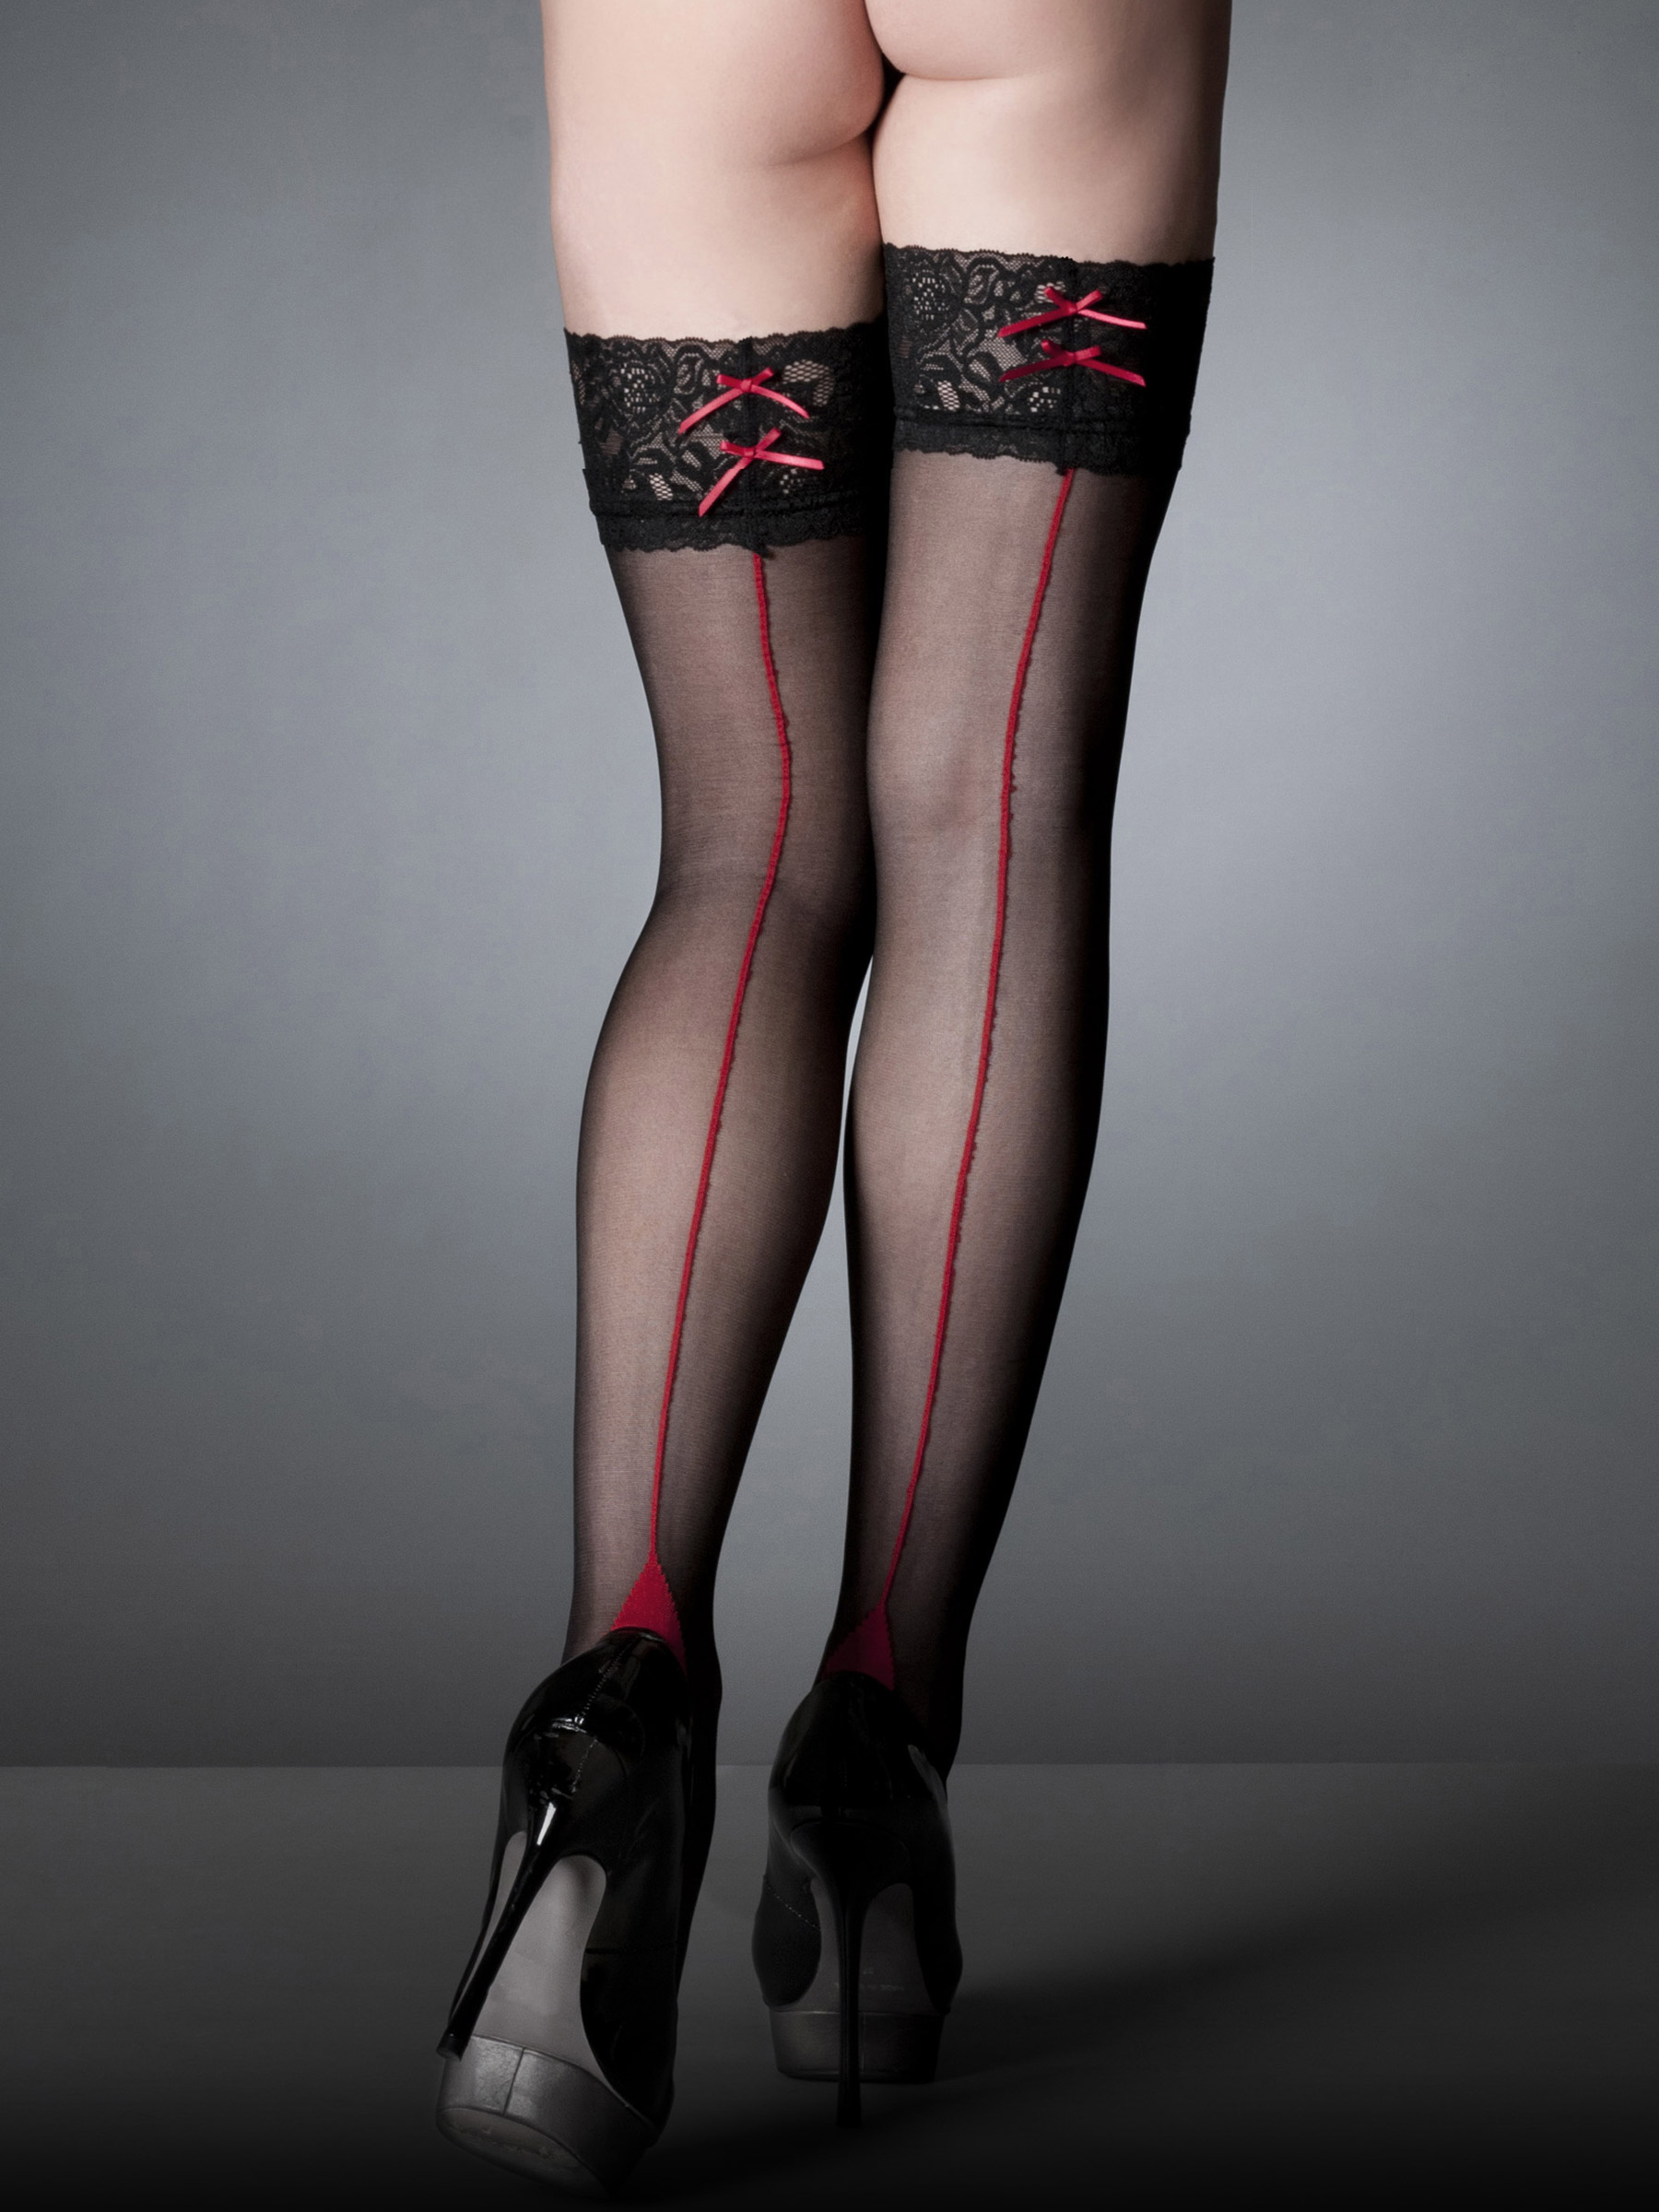 Ann Summers Womens Lace Top Seamed Hold Ups Black Red Sexy Stockings ...